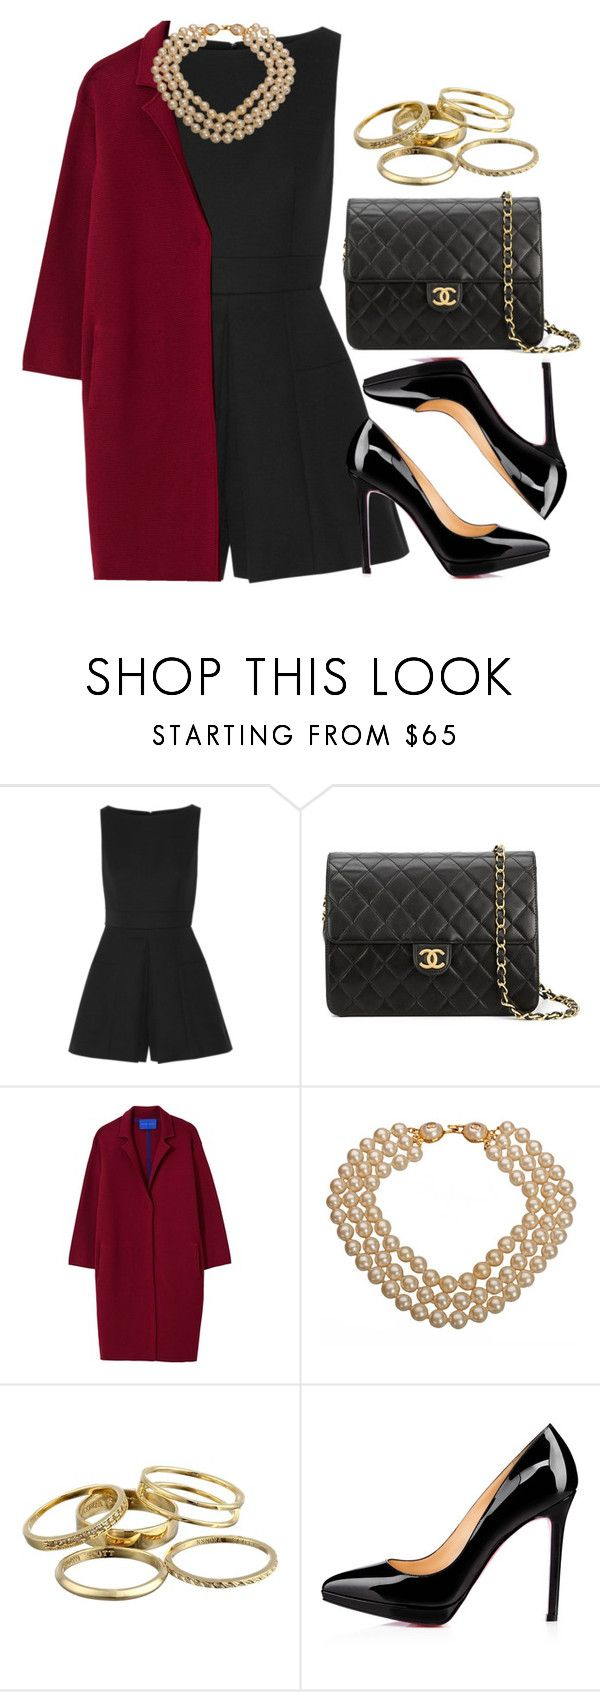 """#14059"" by vany-alvarado ❤ liked on Polyvore featuring Alexander McQueen, Chanel, Winser London, Kendra Scott and Christian Louboutin"